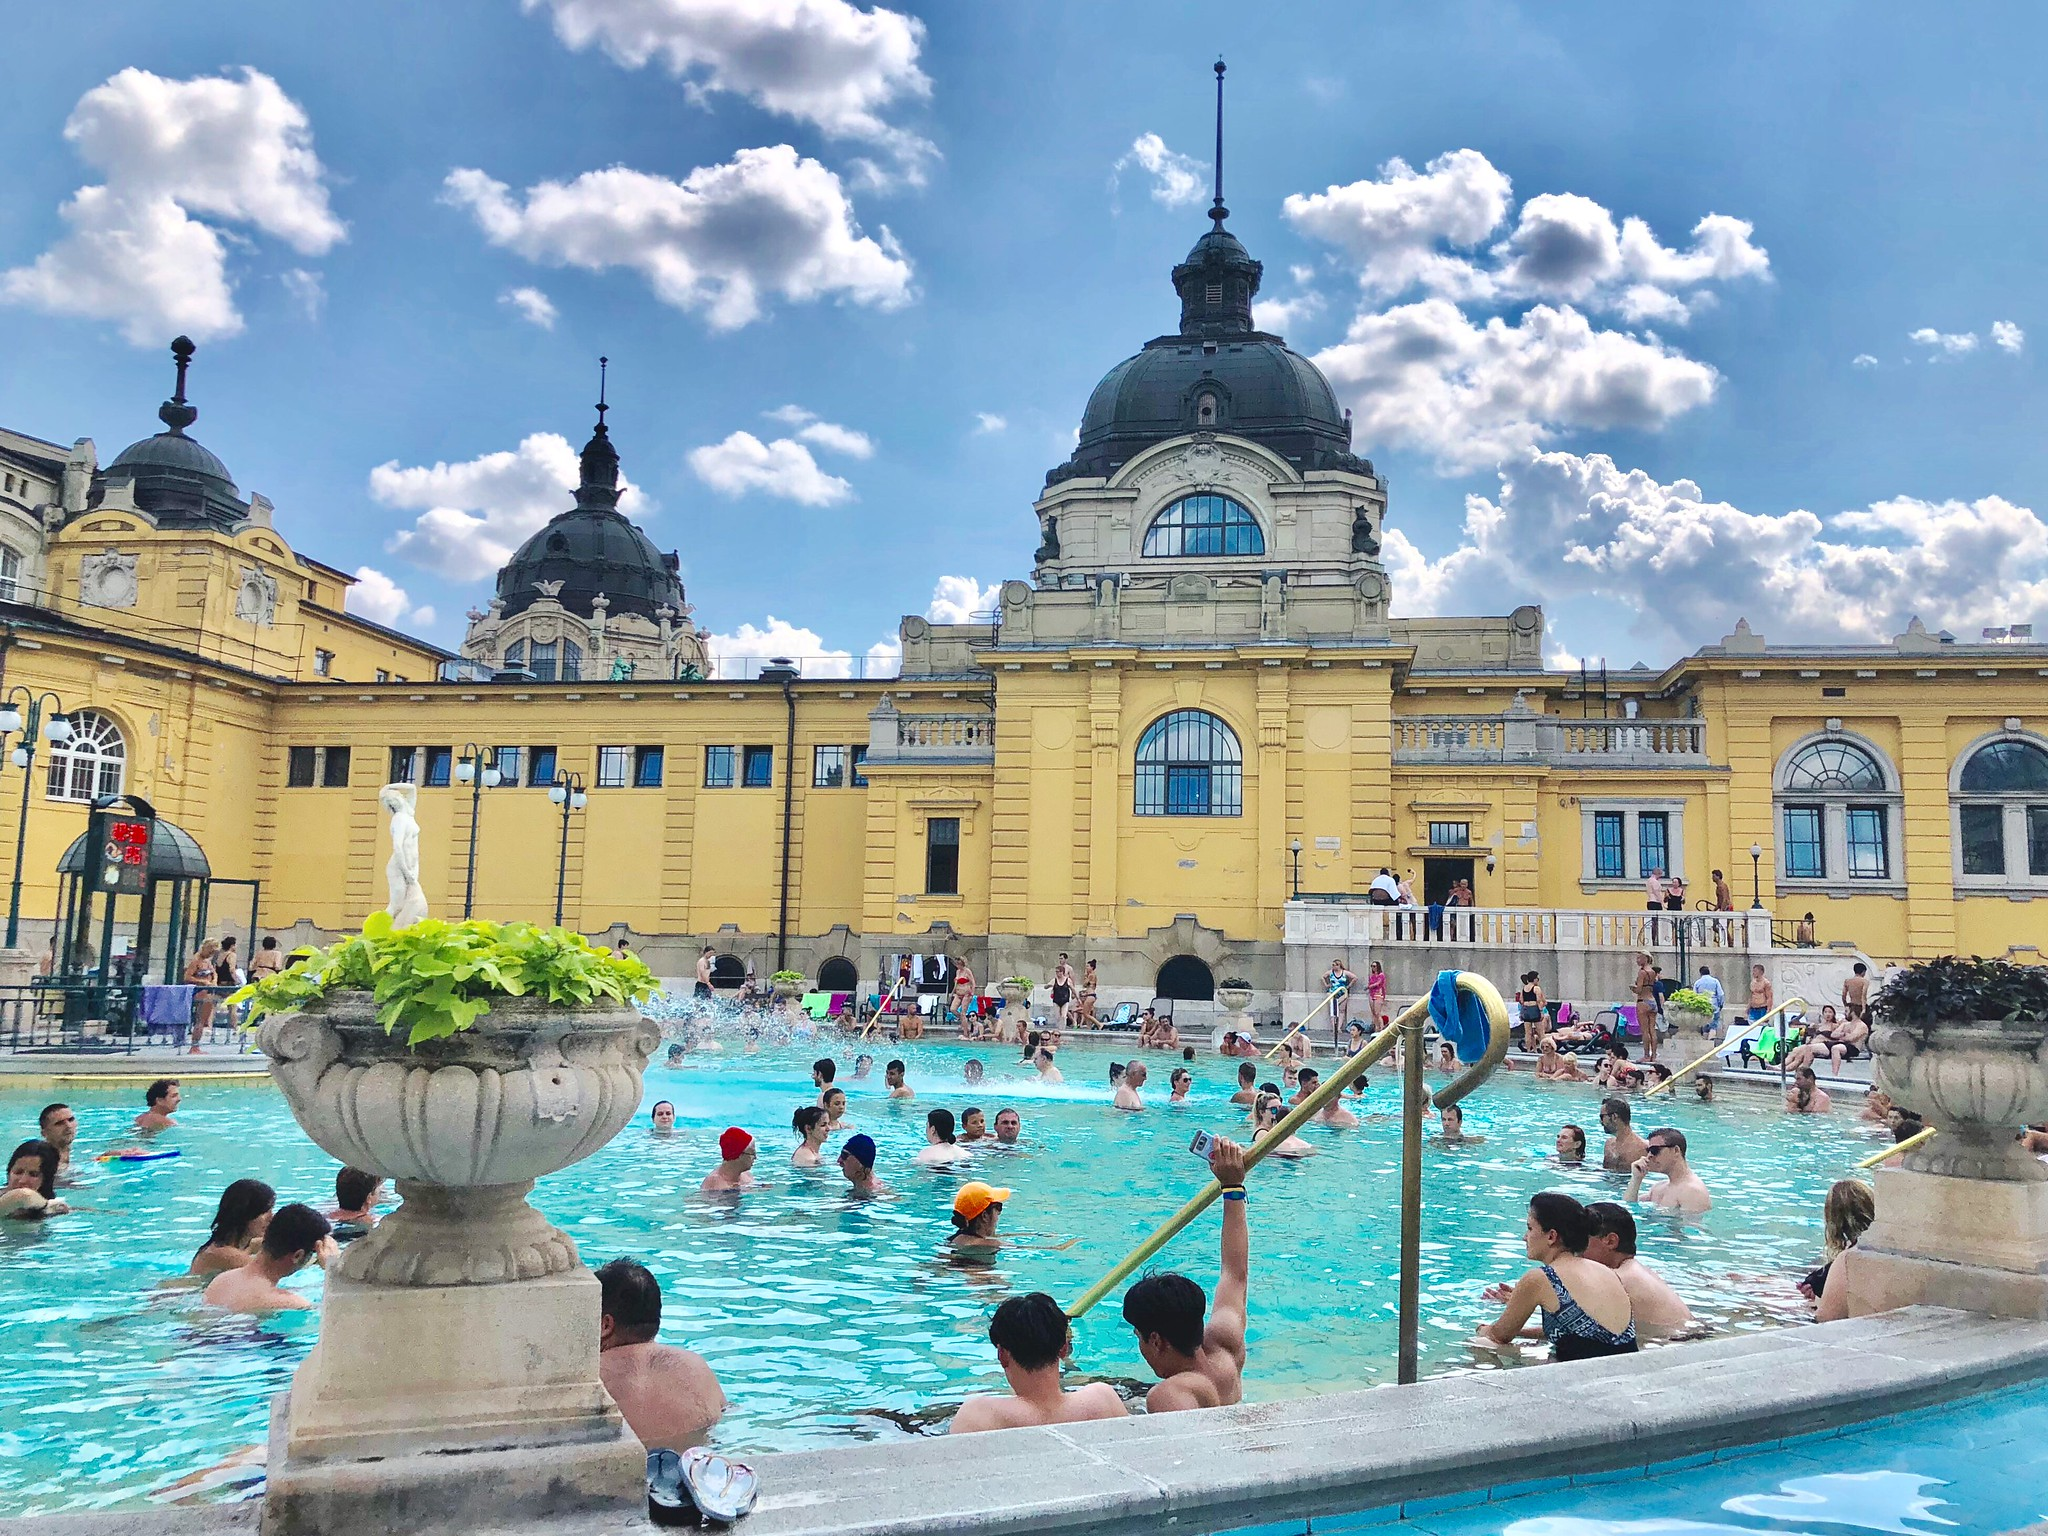 Széchenyi Thermal Bath, Hungary